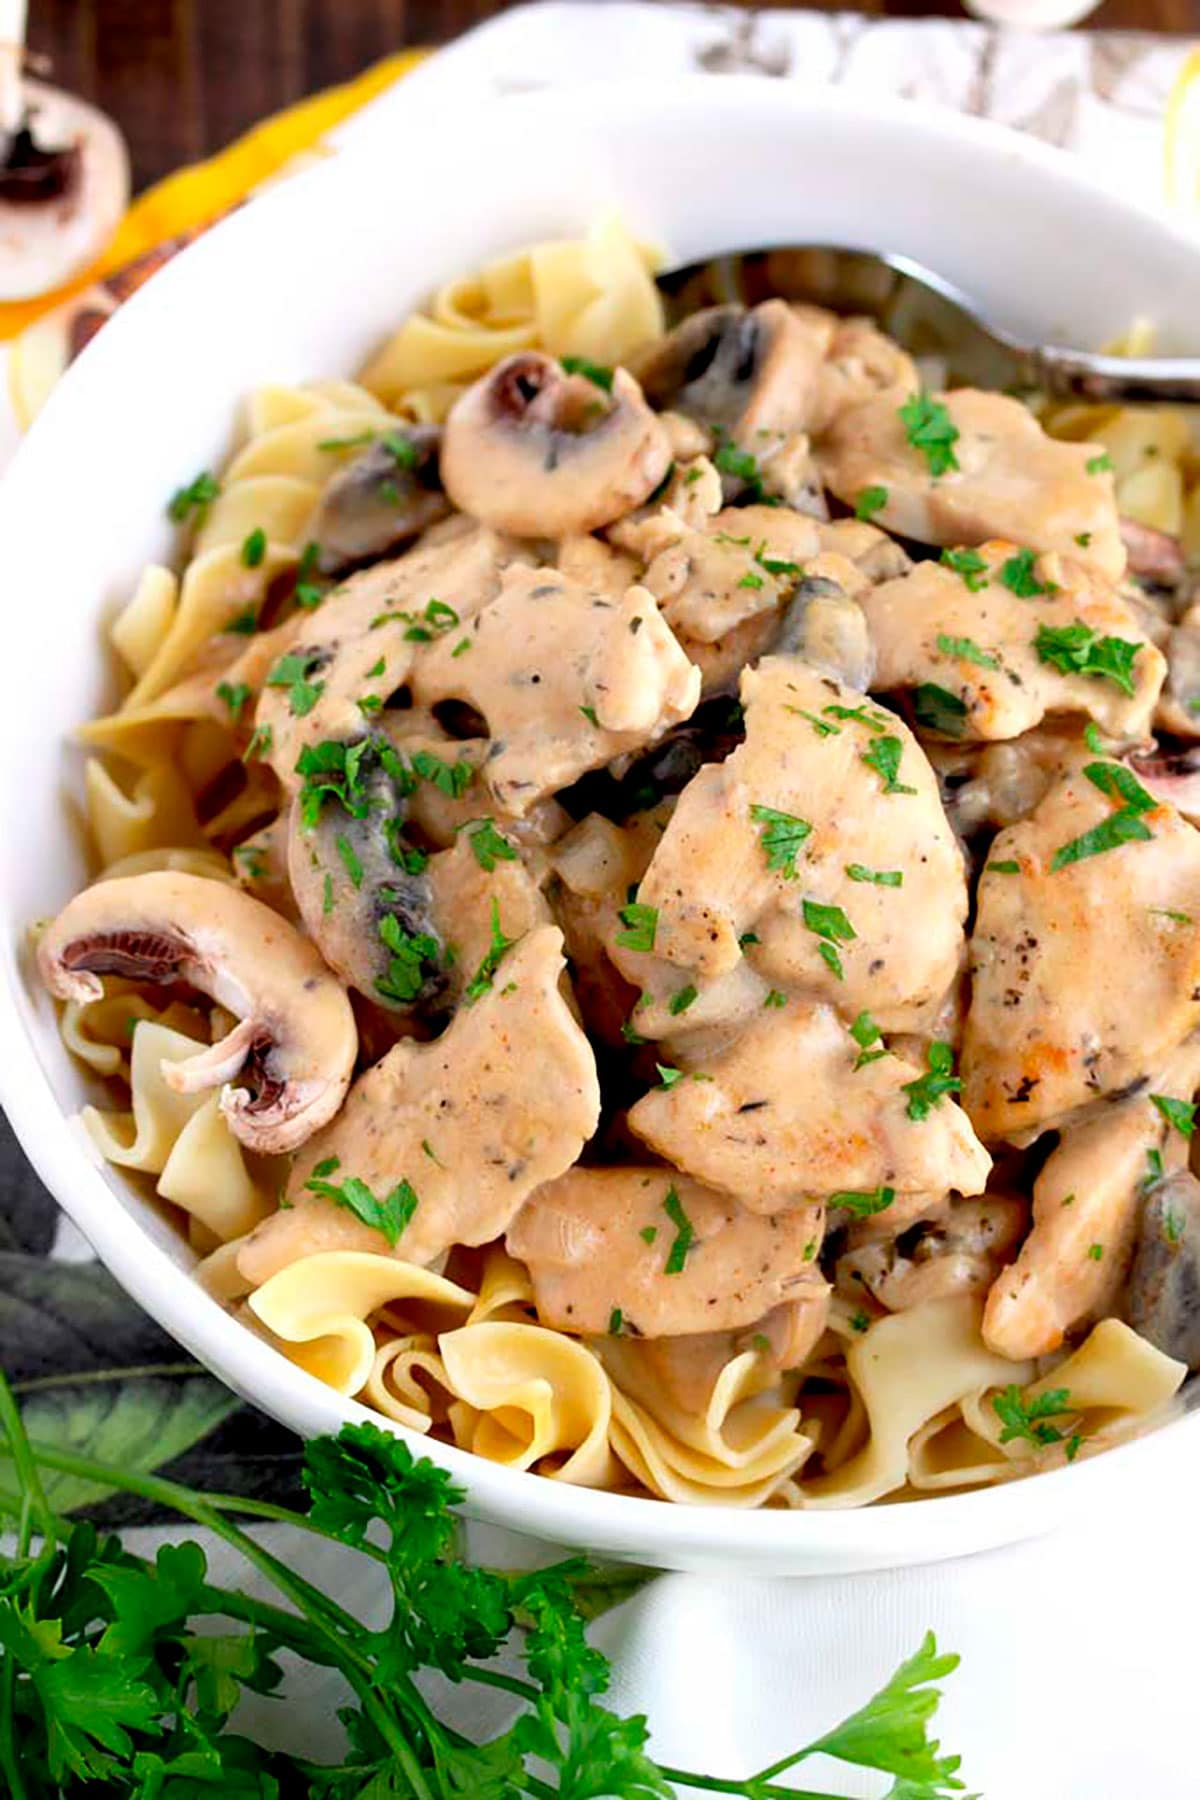 Chicken Stroganoff with creamy mushrooms on a white bowl.l